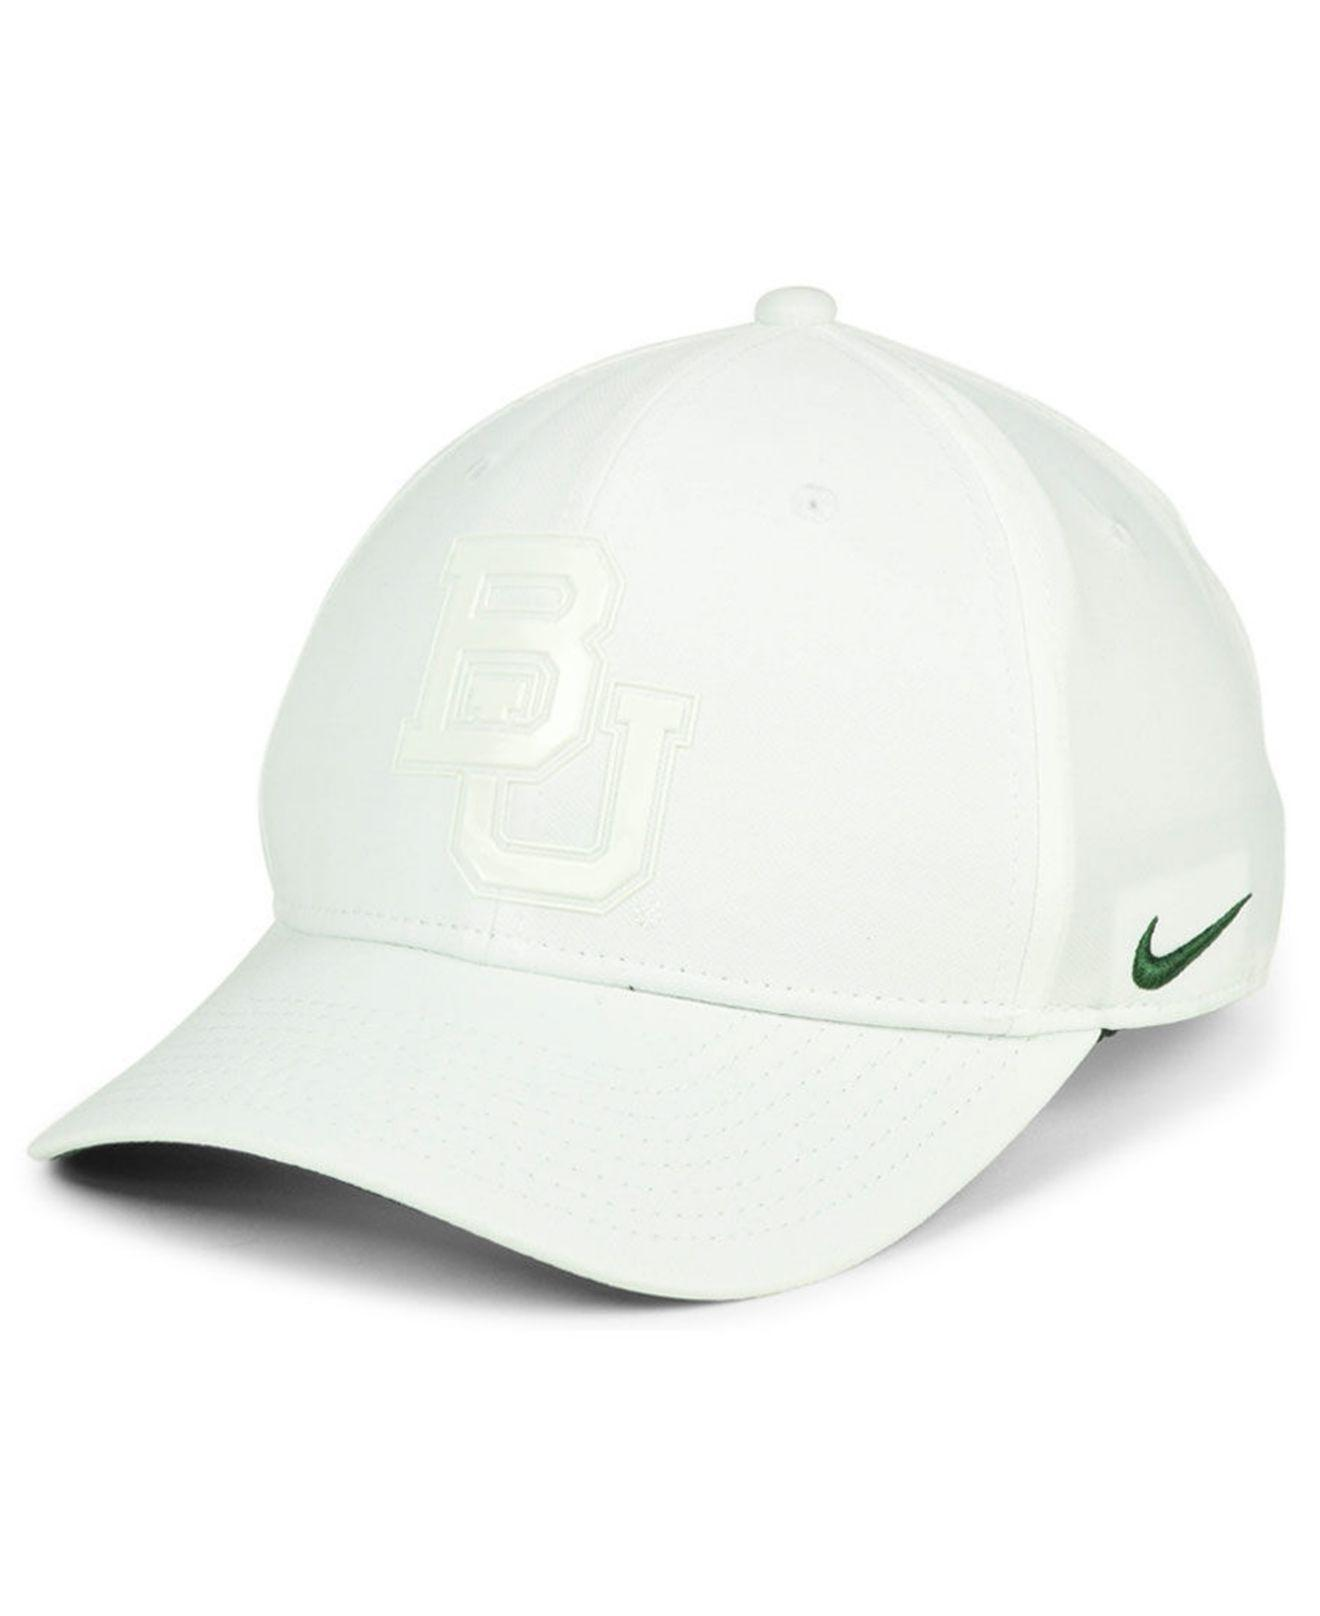 1d93c32a361d6 Lyst - Nike Baylor Bears Col Cap in White for Men